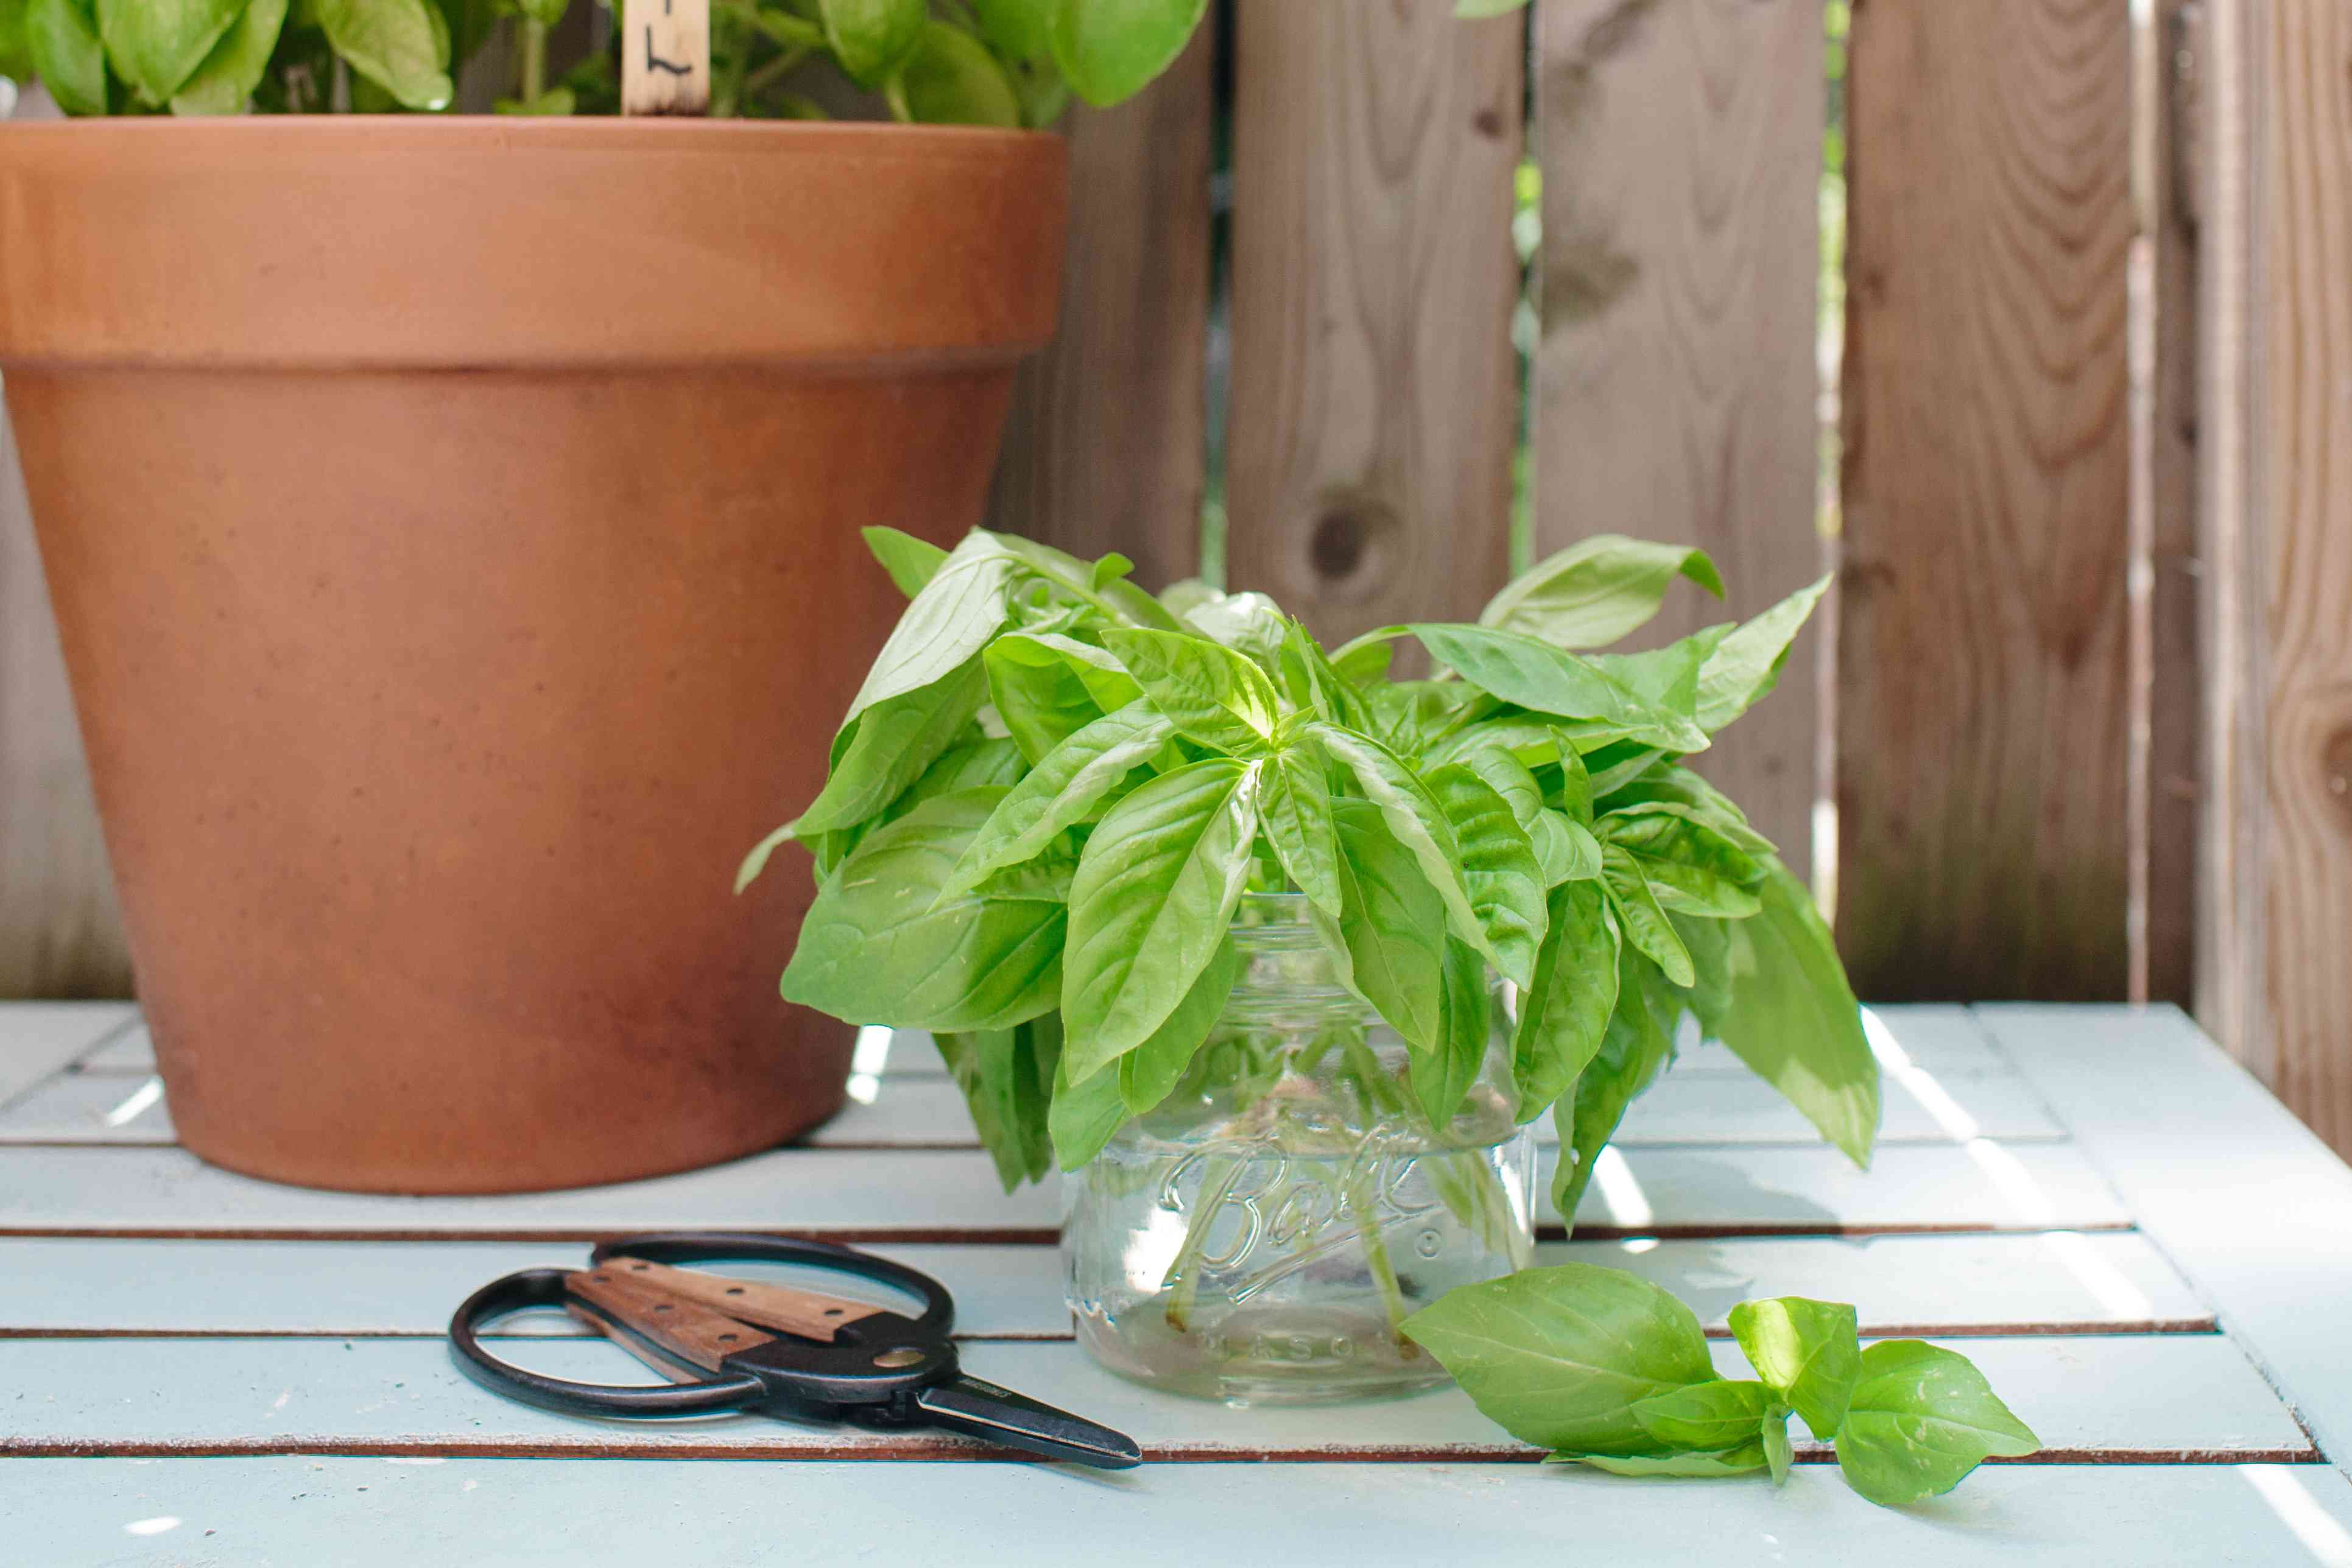 harvested basil next to a potted basil plant